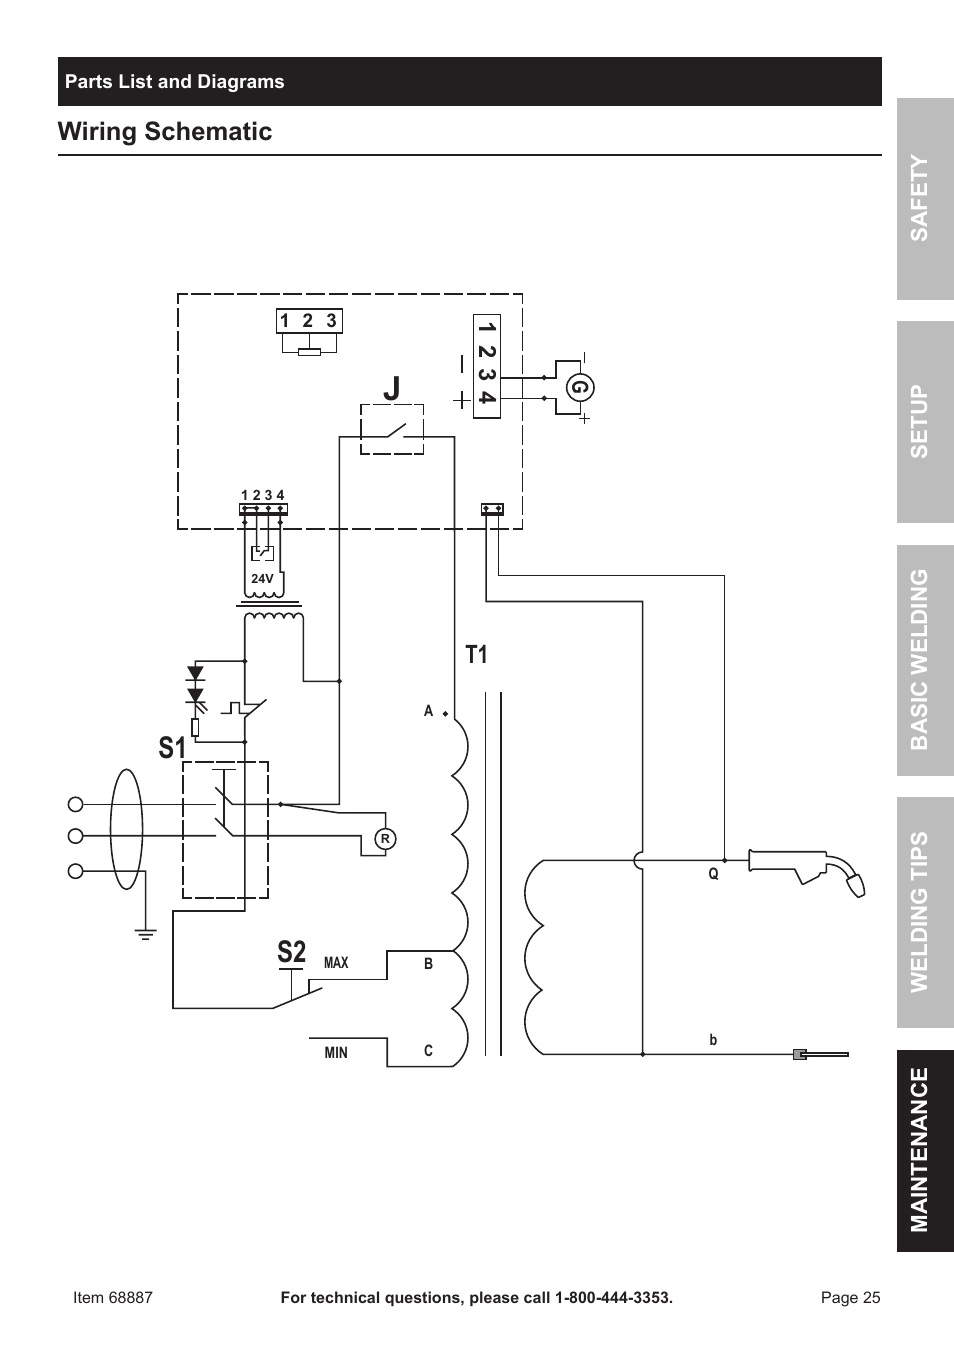 miller welder wiring diagram electrical wiring diagram guide Miller Welder Wiring Diagram 90